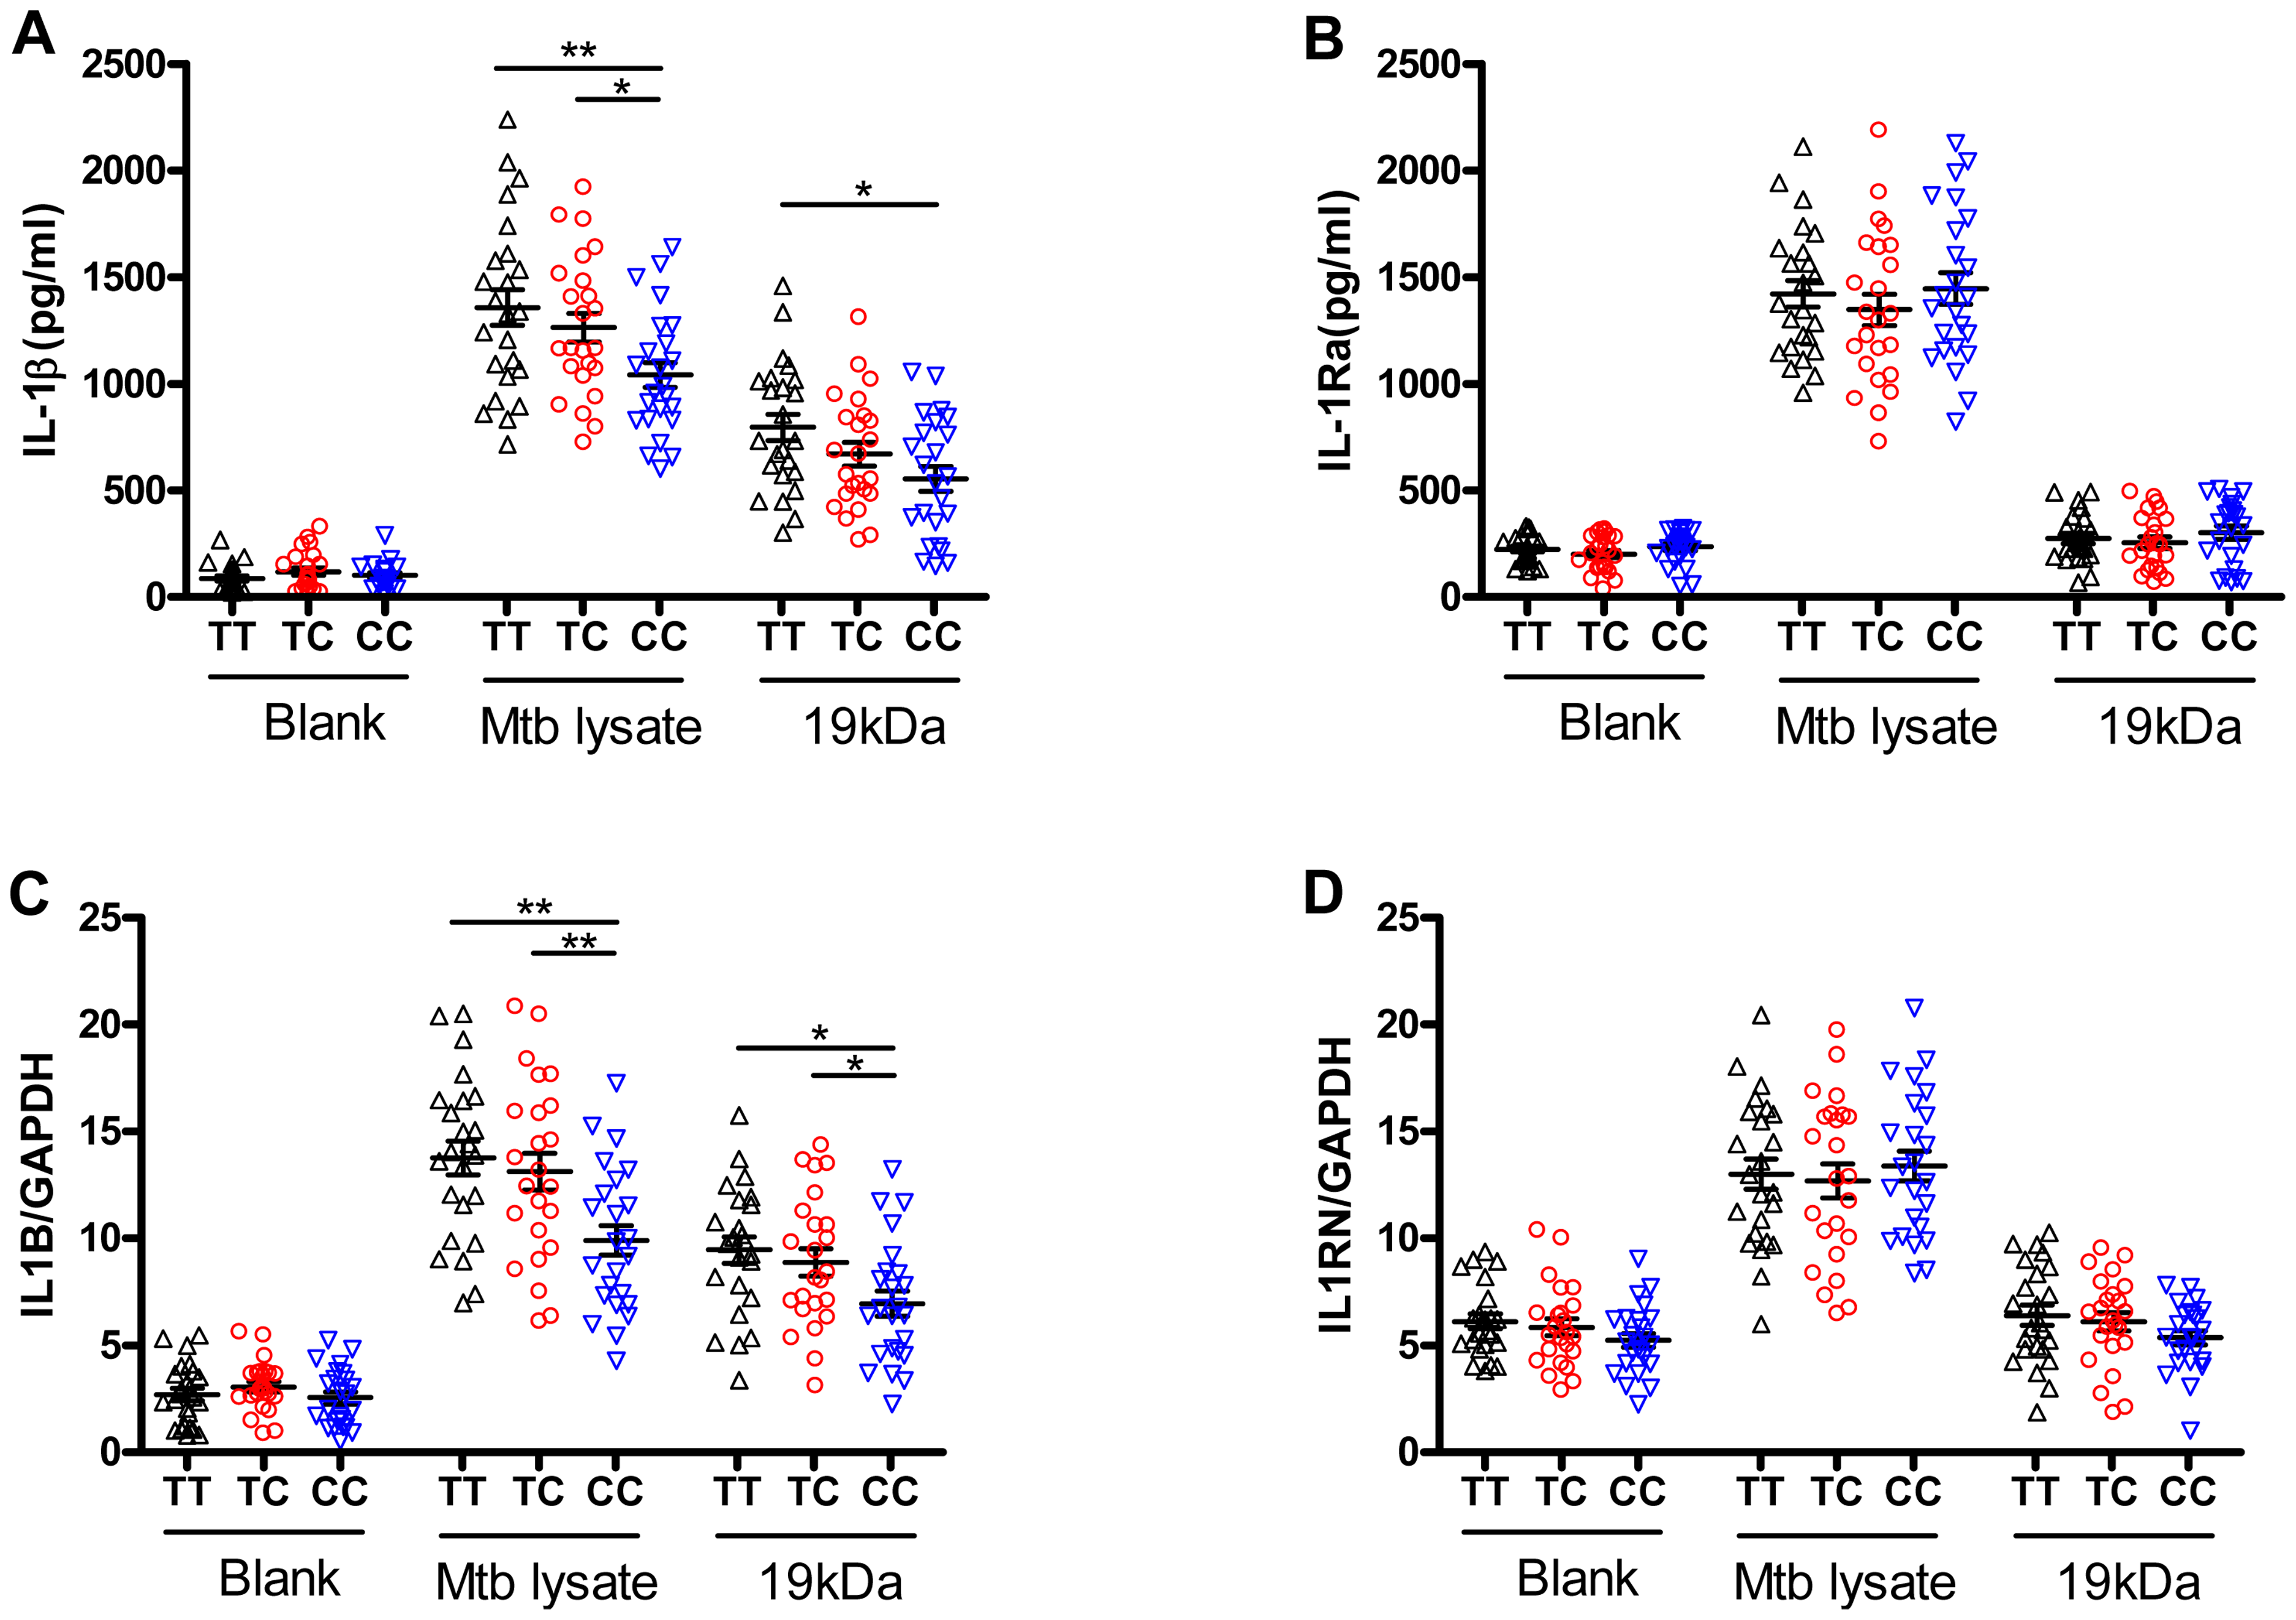 The rs1143627 polymorphism affects IL-1β production by monocytes upon Mtb stimulation.